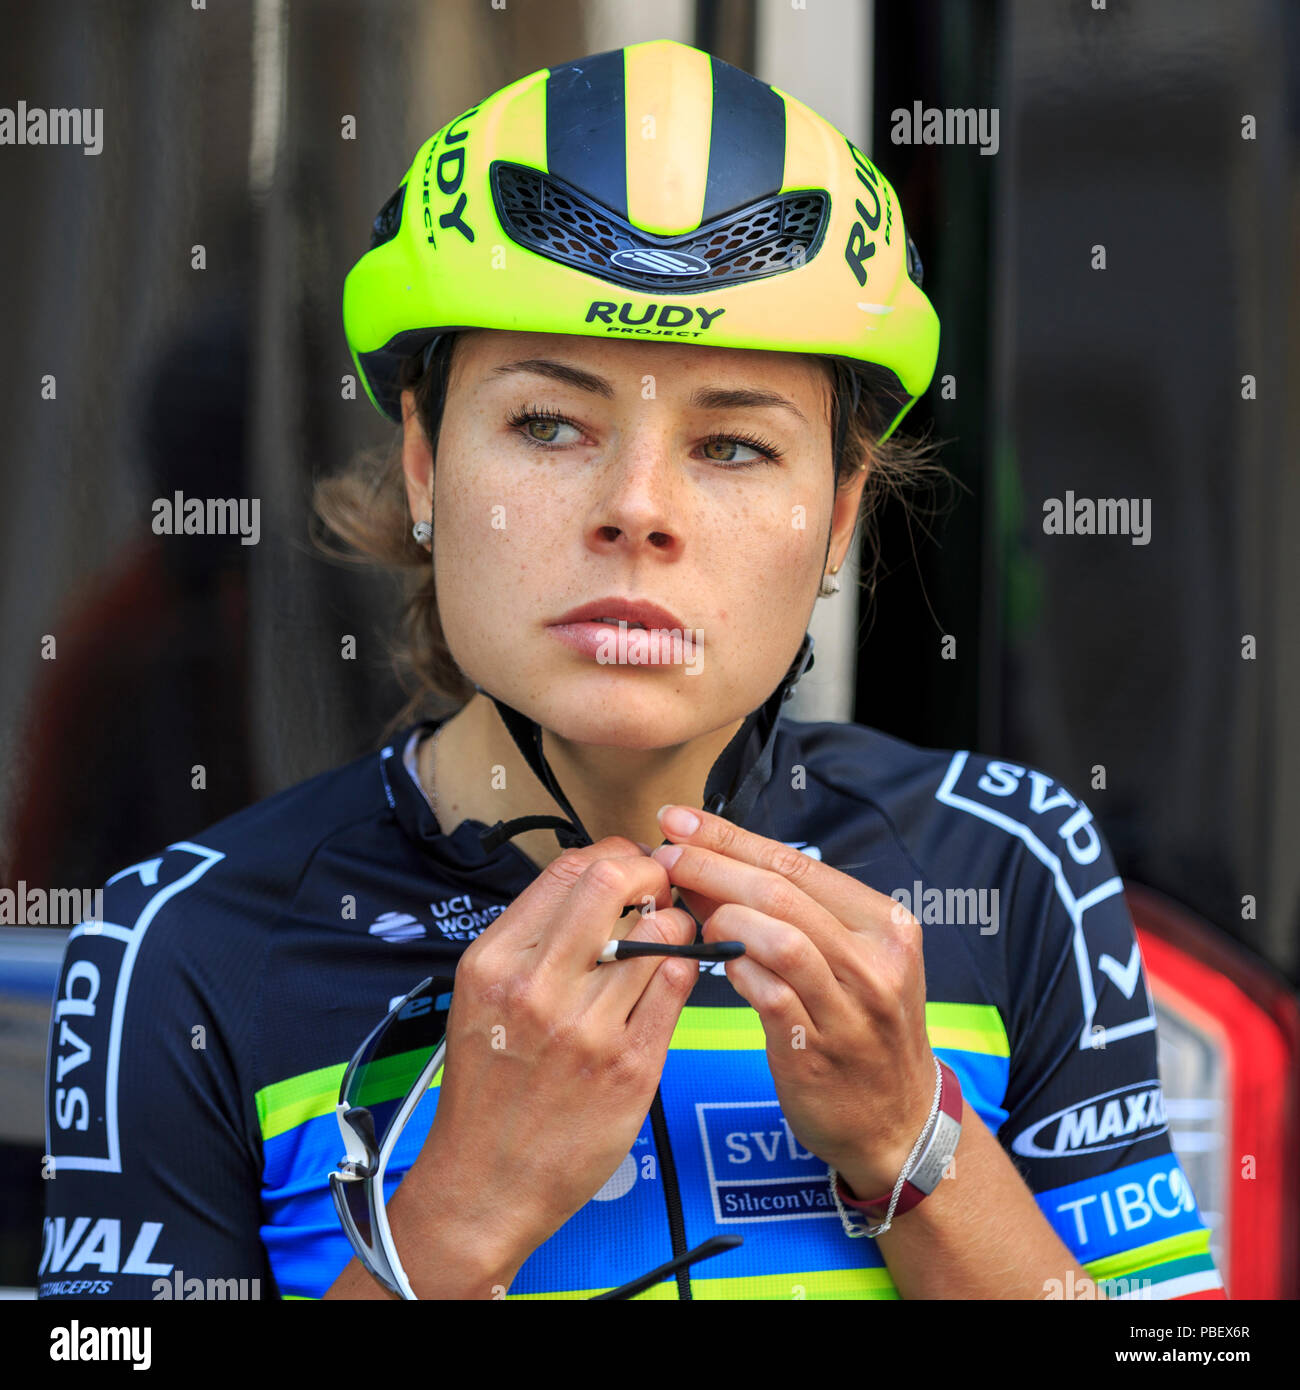 London, UK, 28 July 2018. Prudential RideLondon Classique. Ingrid Drexel (Team Tibco SVB, MEX) prepares ahead of the RideLondon Classique - a 65km race around a 5.4km circuit finishing on The Mall. The race was won by Kirsten Wild (Wiggle-High5, NED). Stock Photo